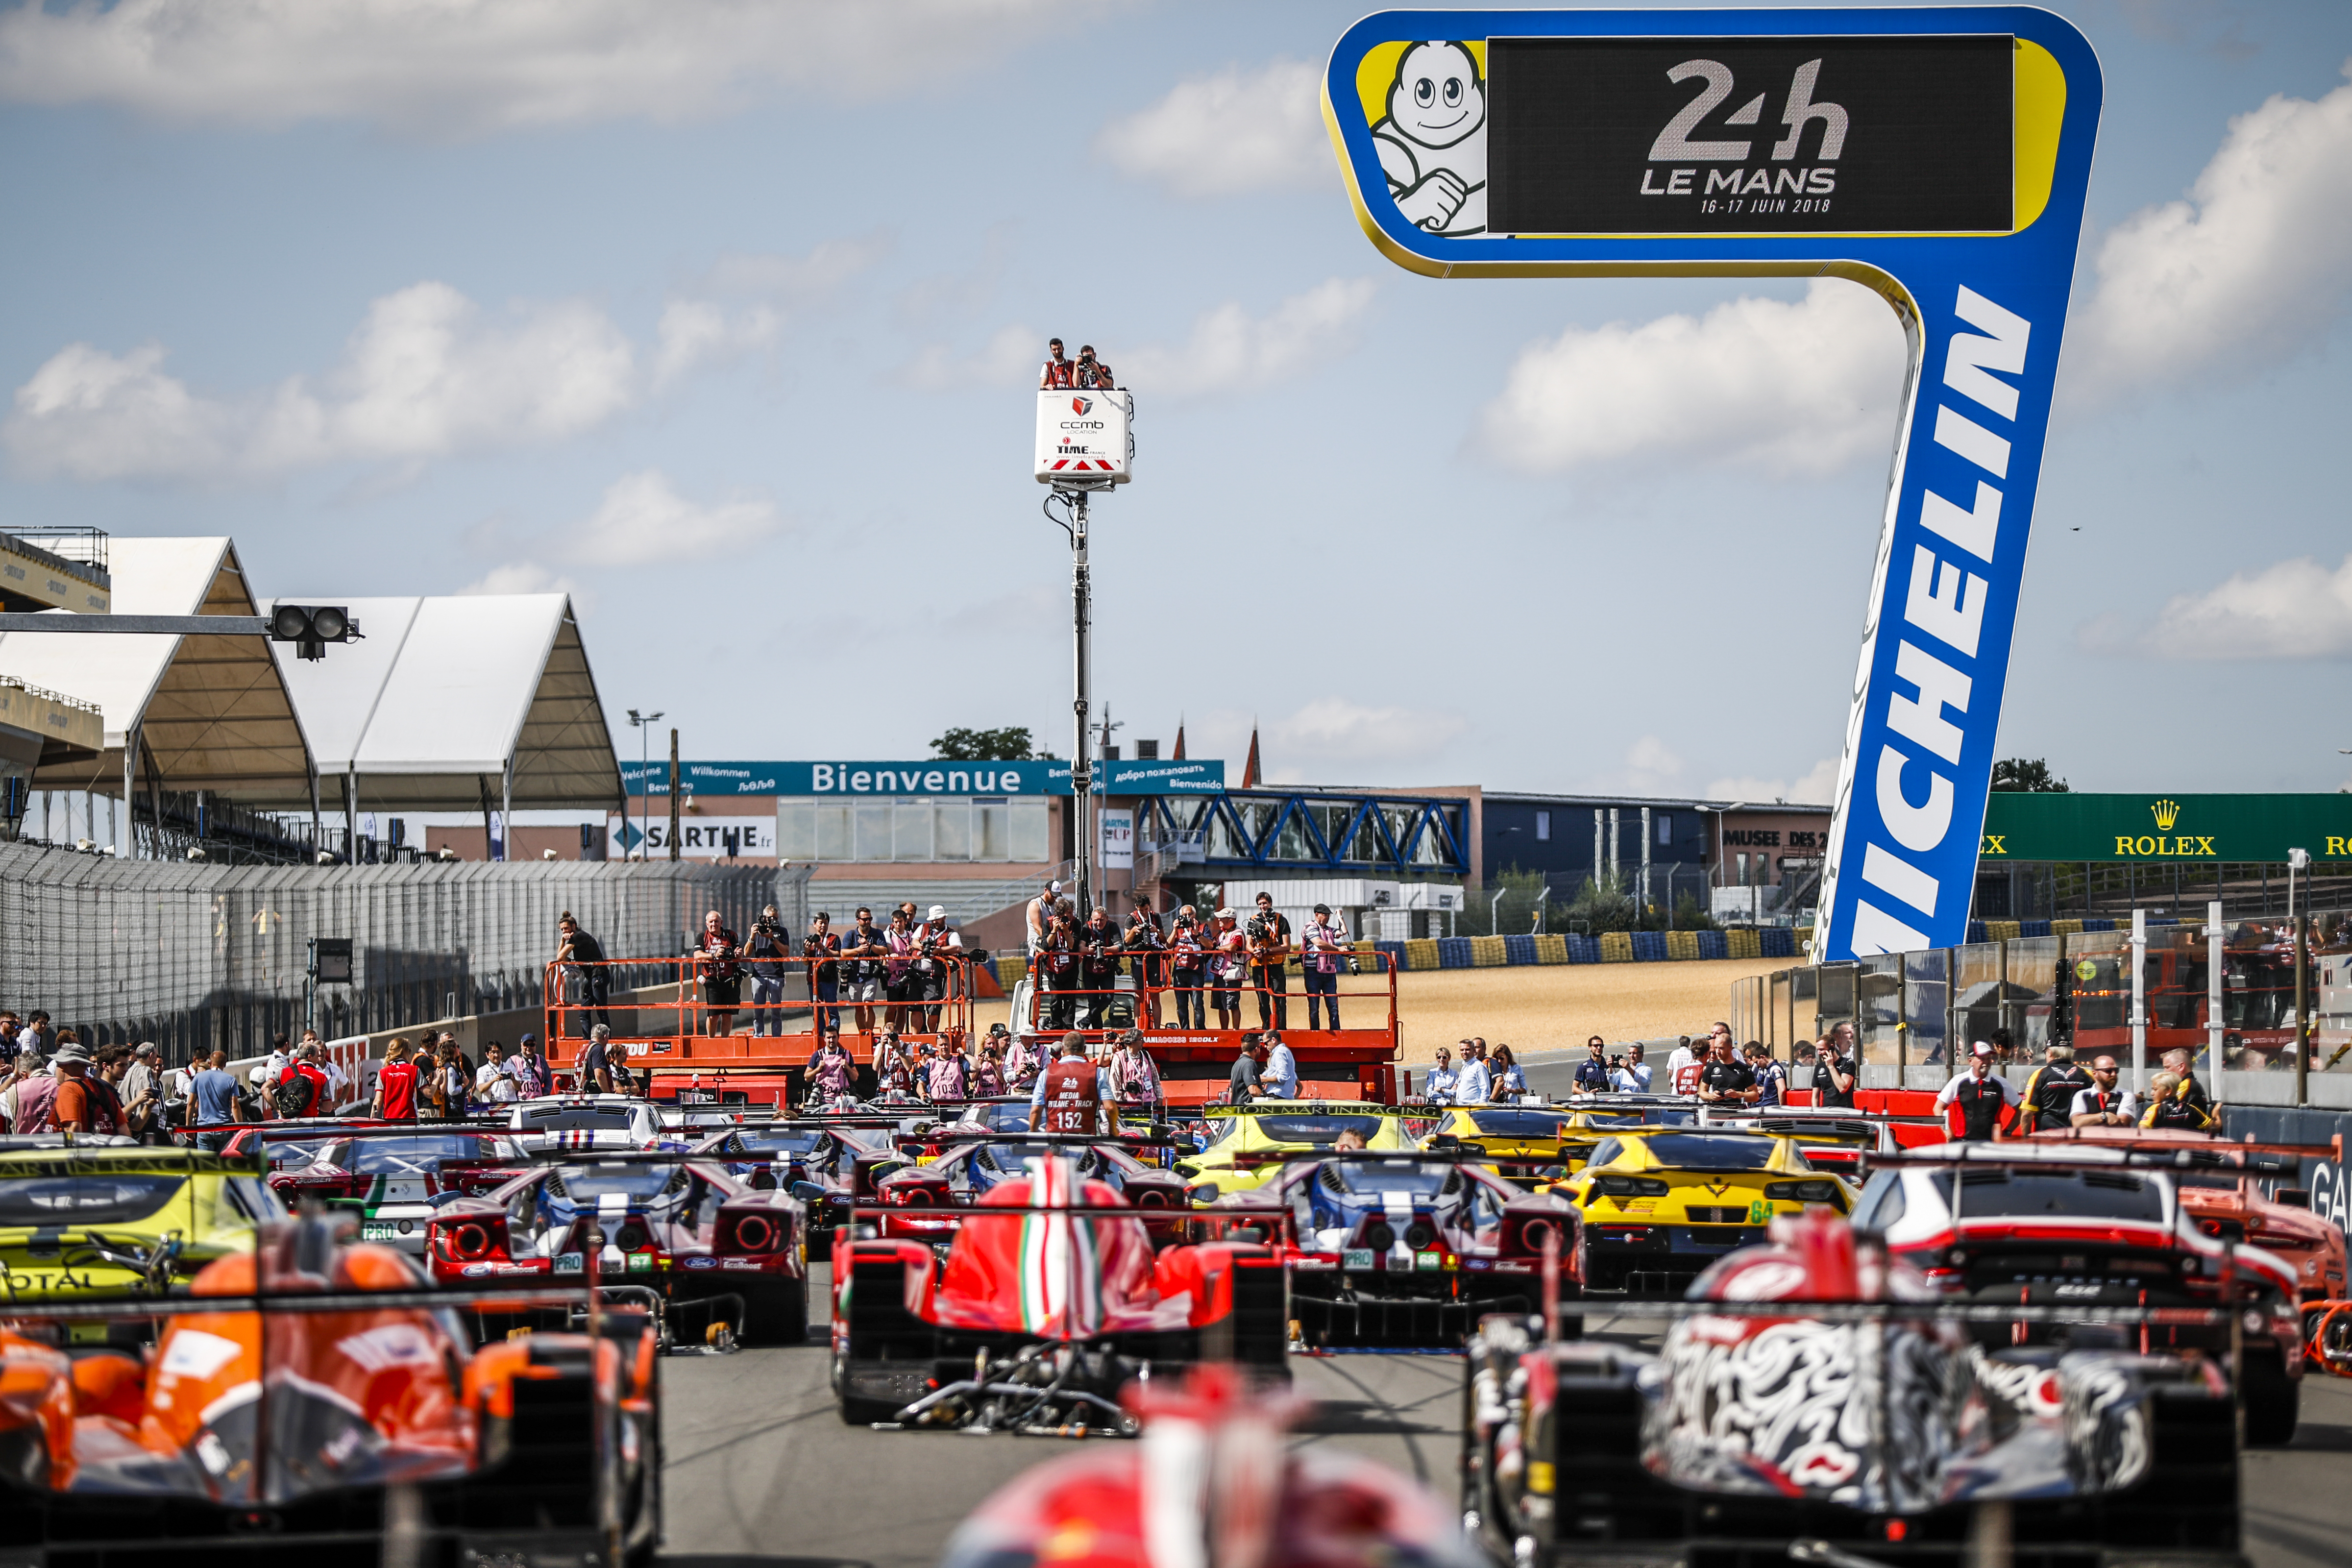 Le Mans 24 Hours: A full house for Michelin at the 2018 Le Mans Test Day